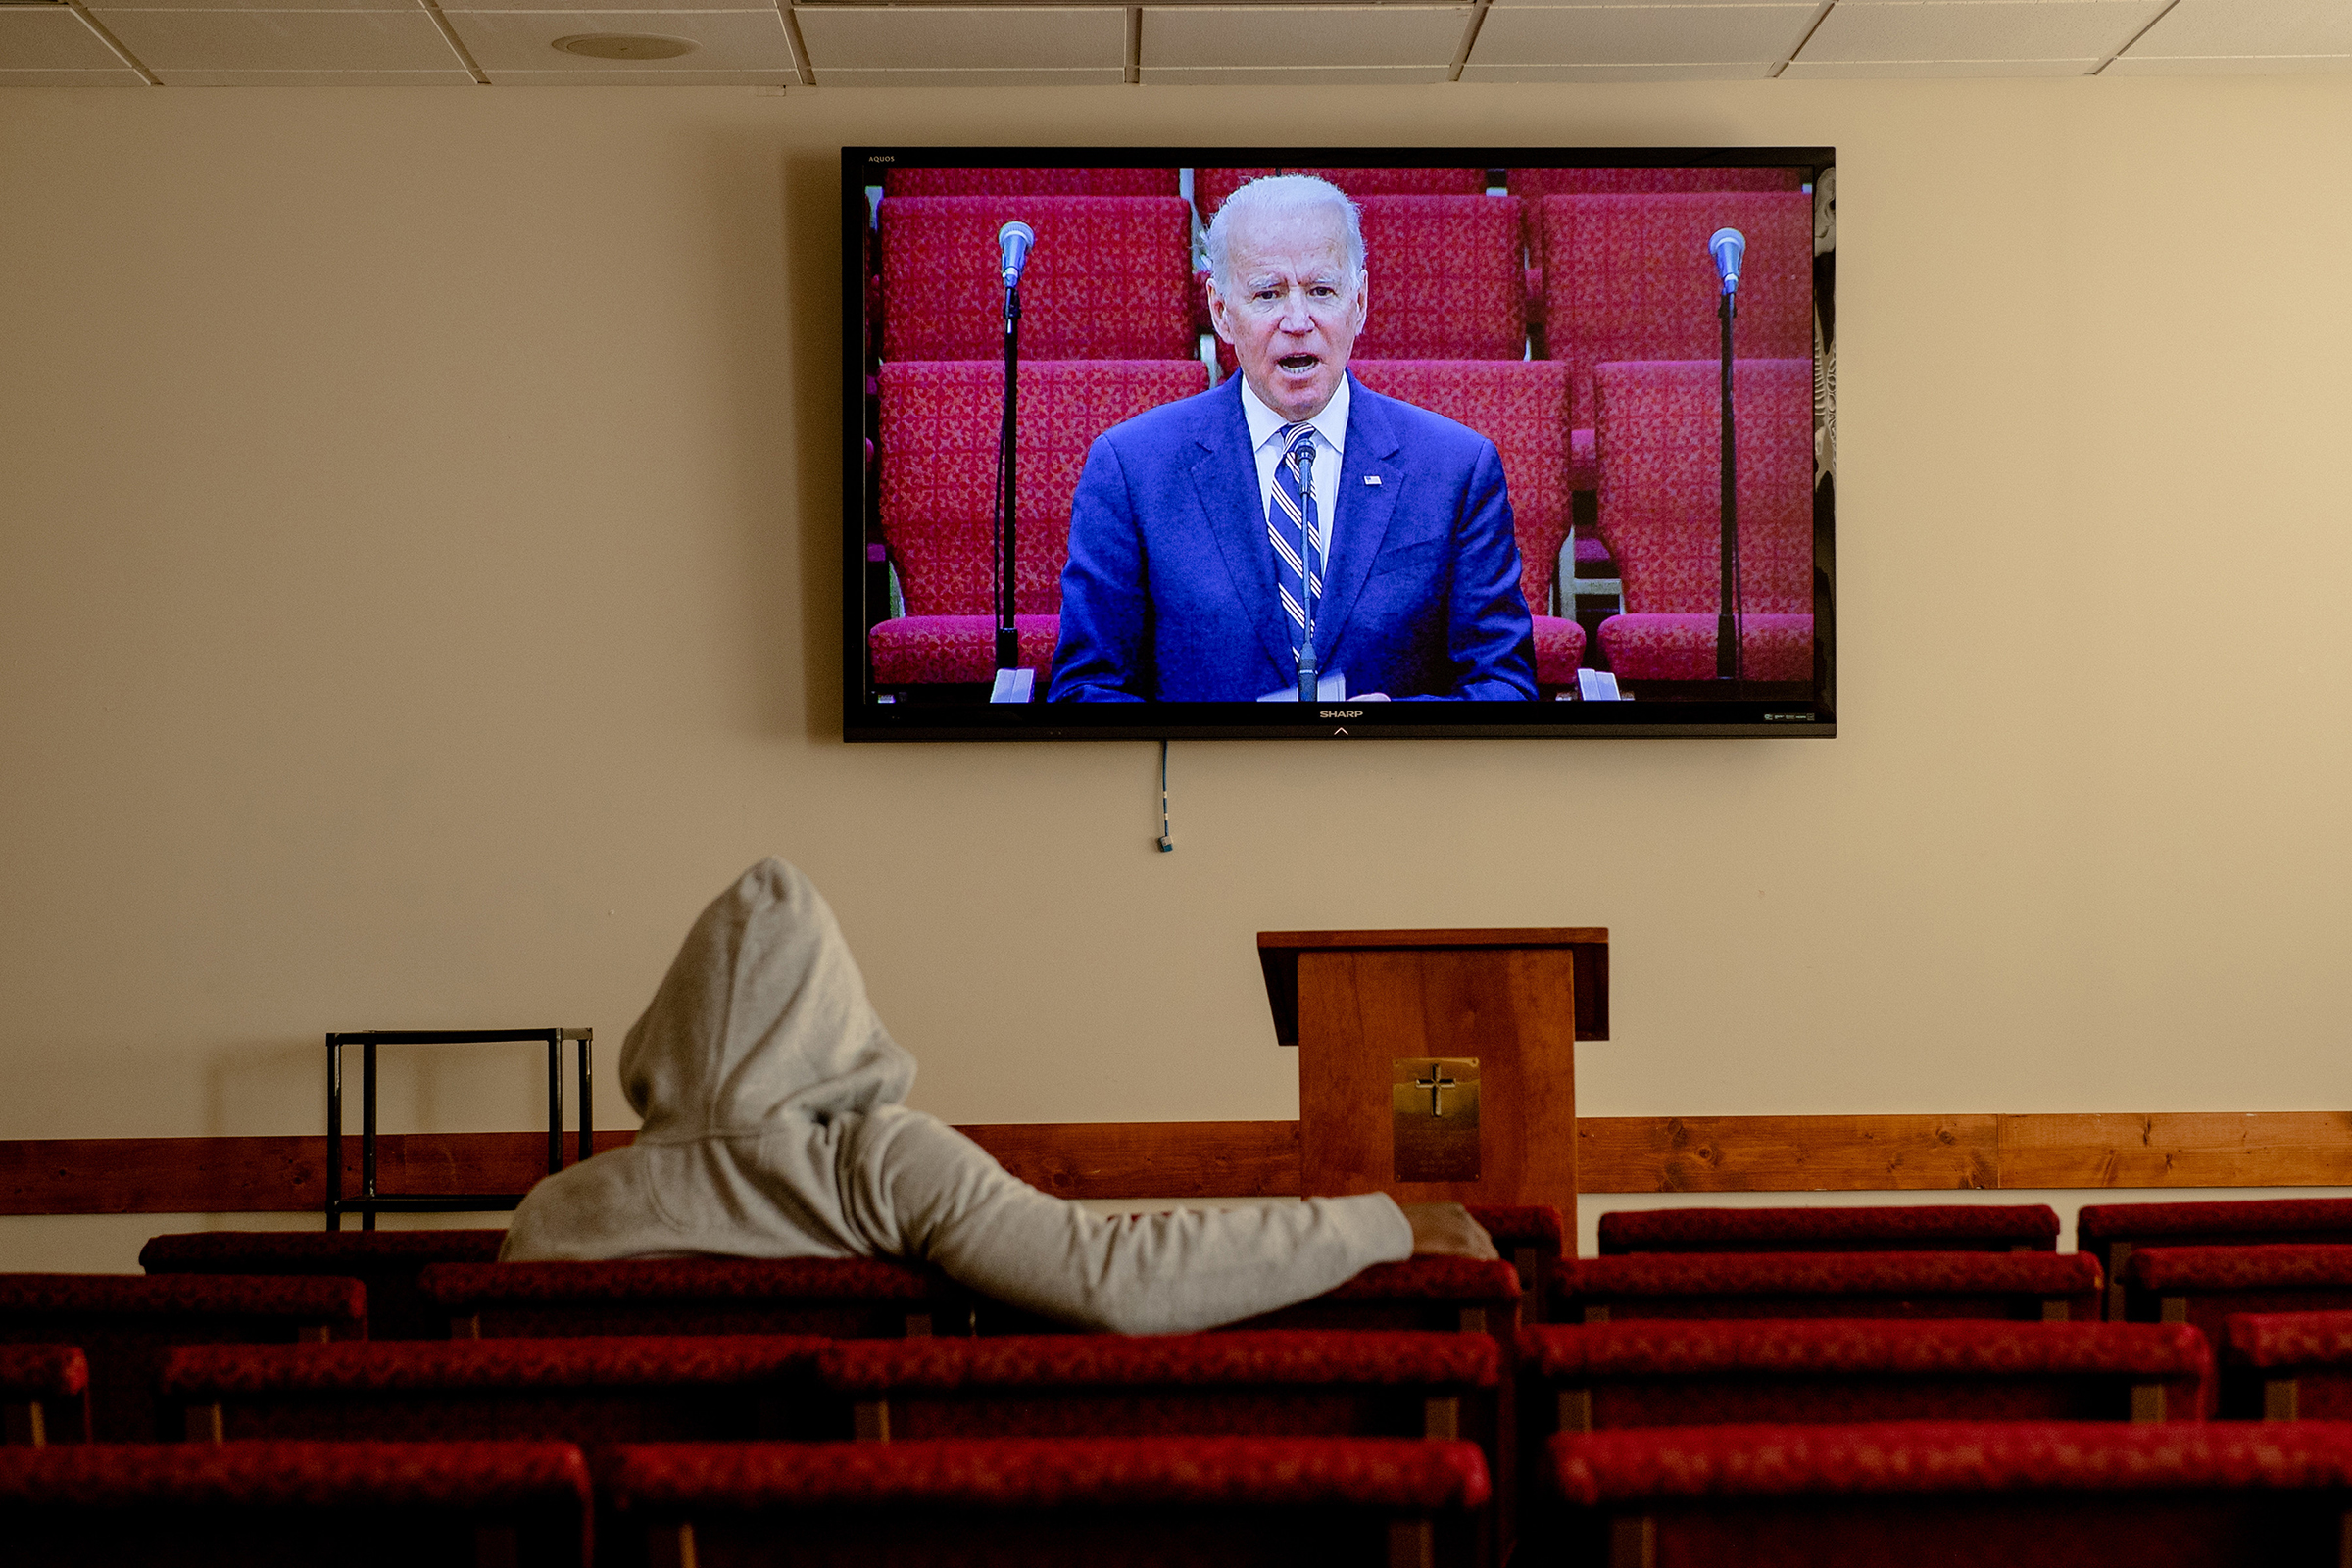 A screen shows Democratic presidential candidate Joe Biden during a service at Royal Missionary Baptist Church in North Charleston, S.C., on Feb. 23, 2020.